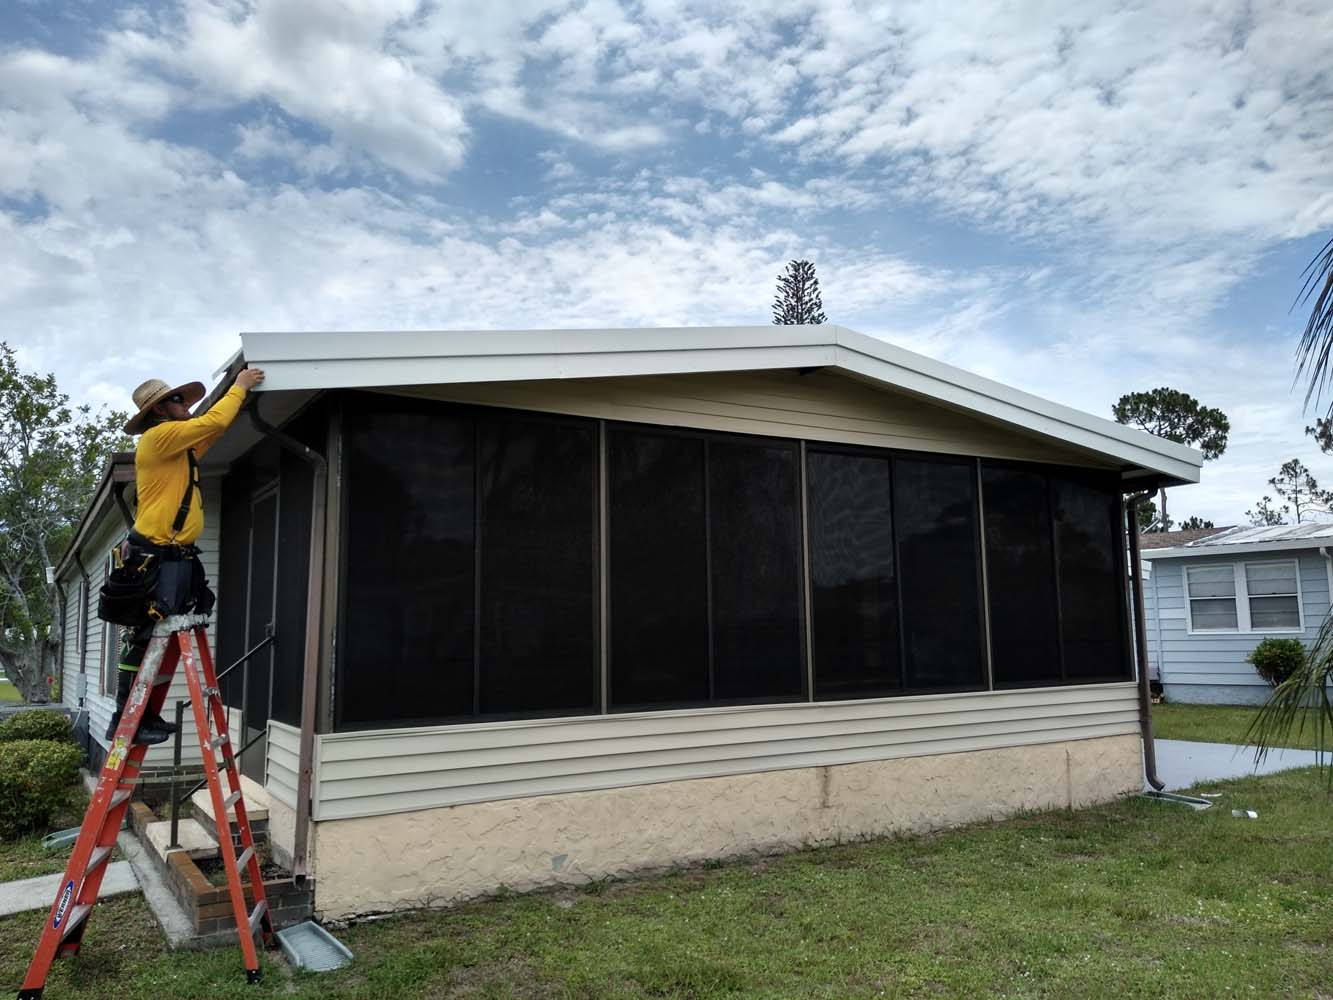 Roof replacement in North Fort Myers for mobile homes.